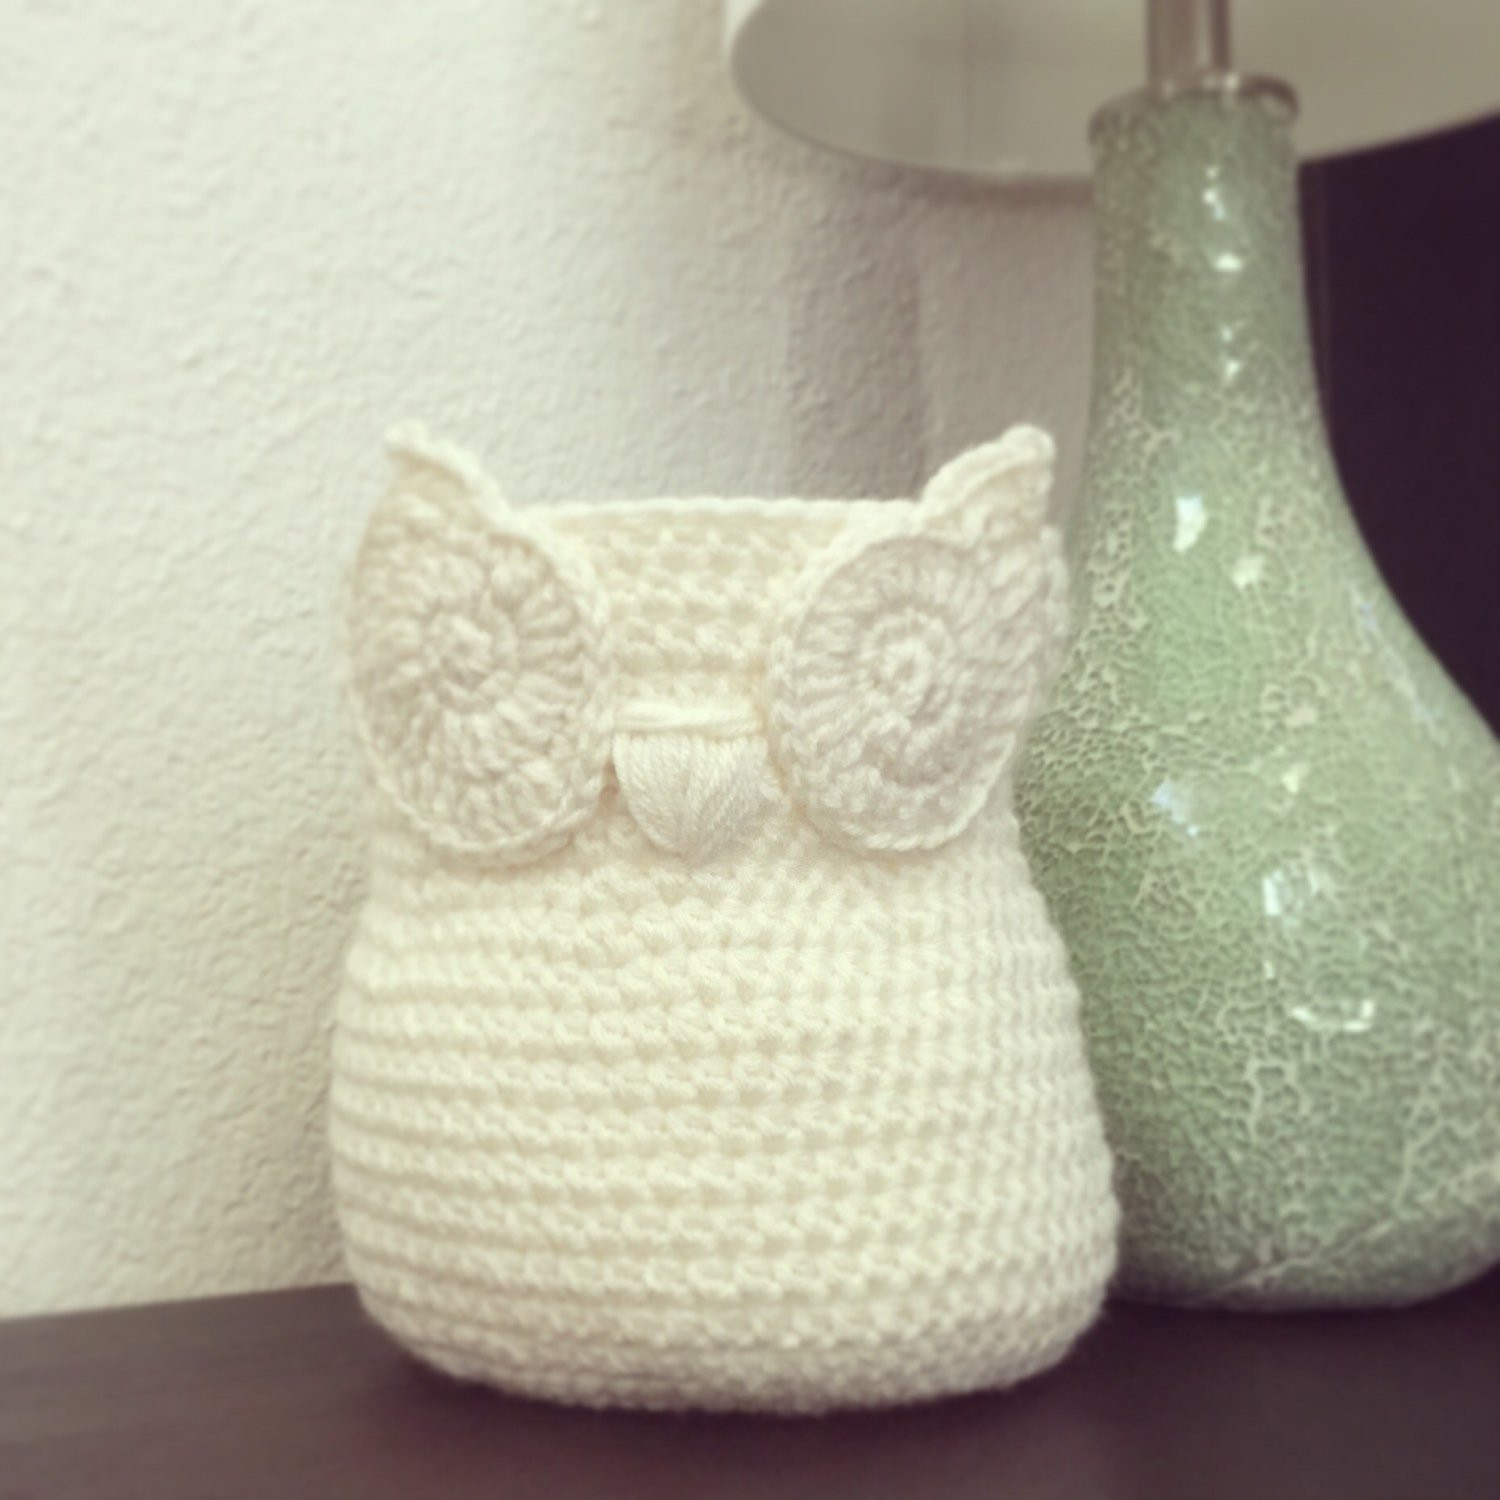 Awesome Small Chic Handmade Crochet Owl Basket Home Decor by Crochet Owl Basket Of Brilliant 47 Photos Crochet Owl Basket